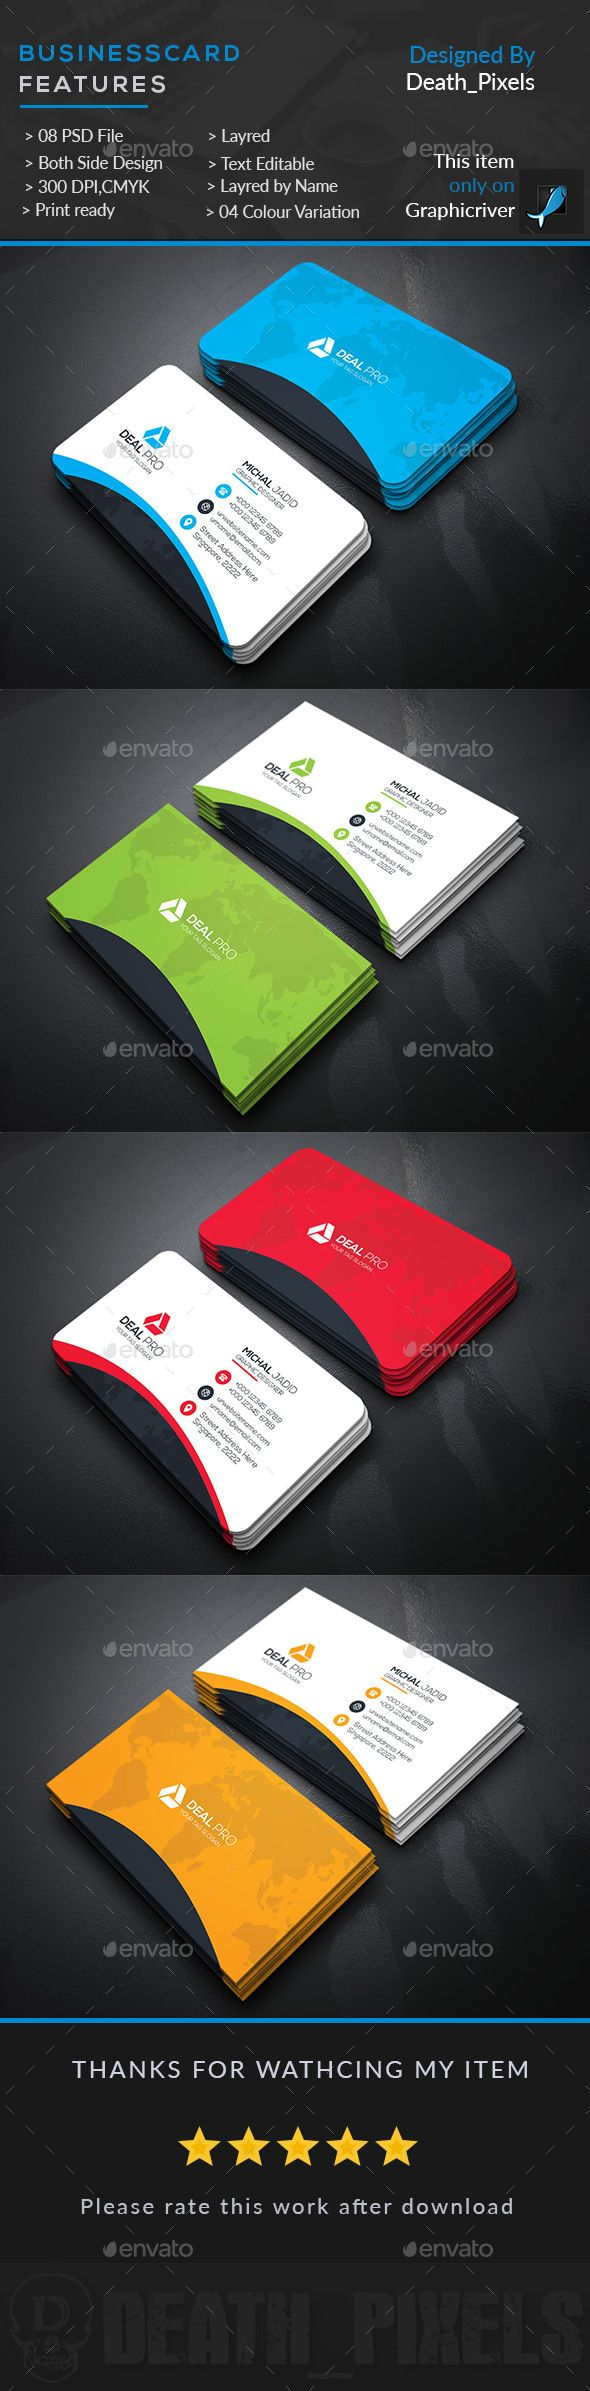 35 best business card design images on pinterest business cards business card design template business cards print template psd download here https reheart Images